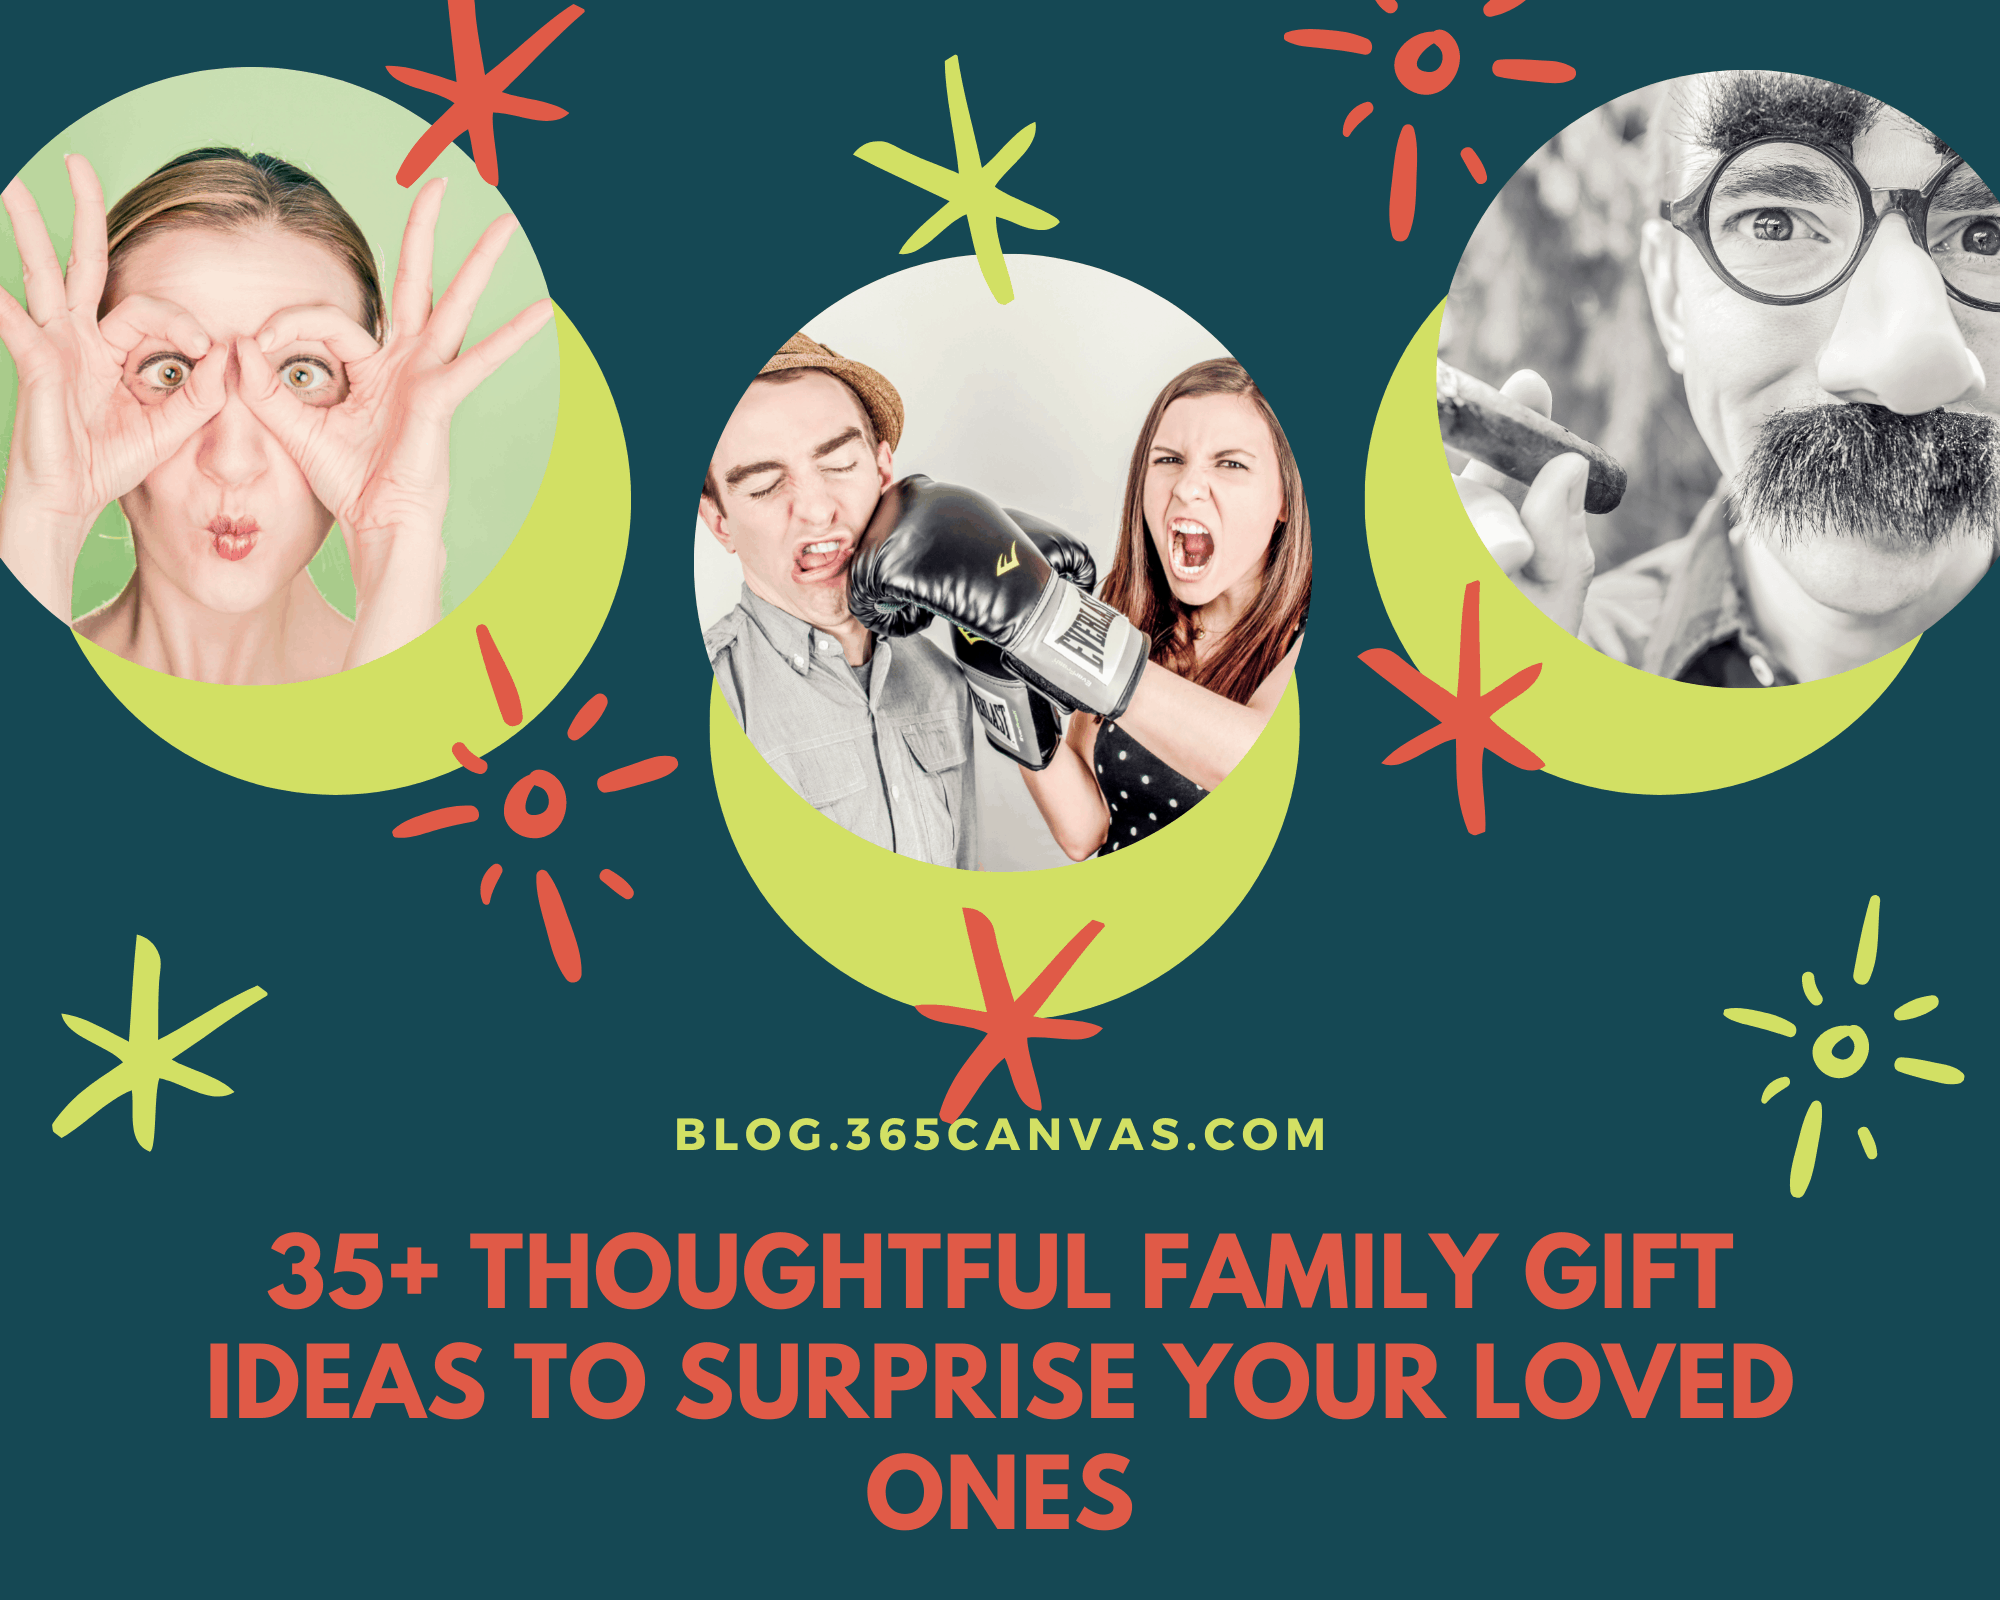 35+ Thoughtful Family Gift Ideas To Surprise Your Loved Ones